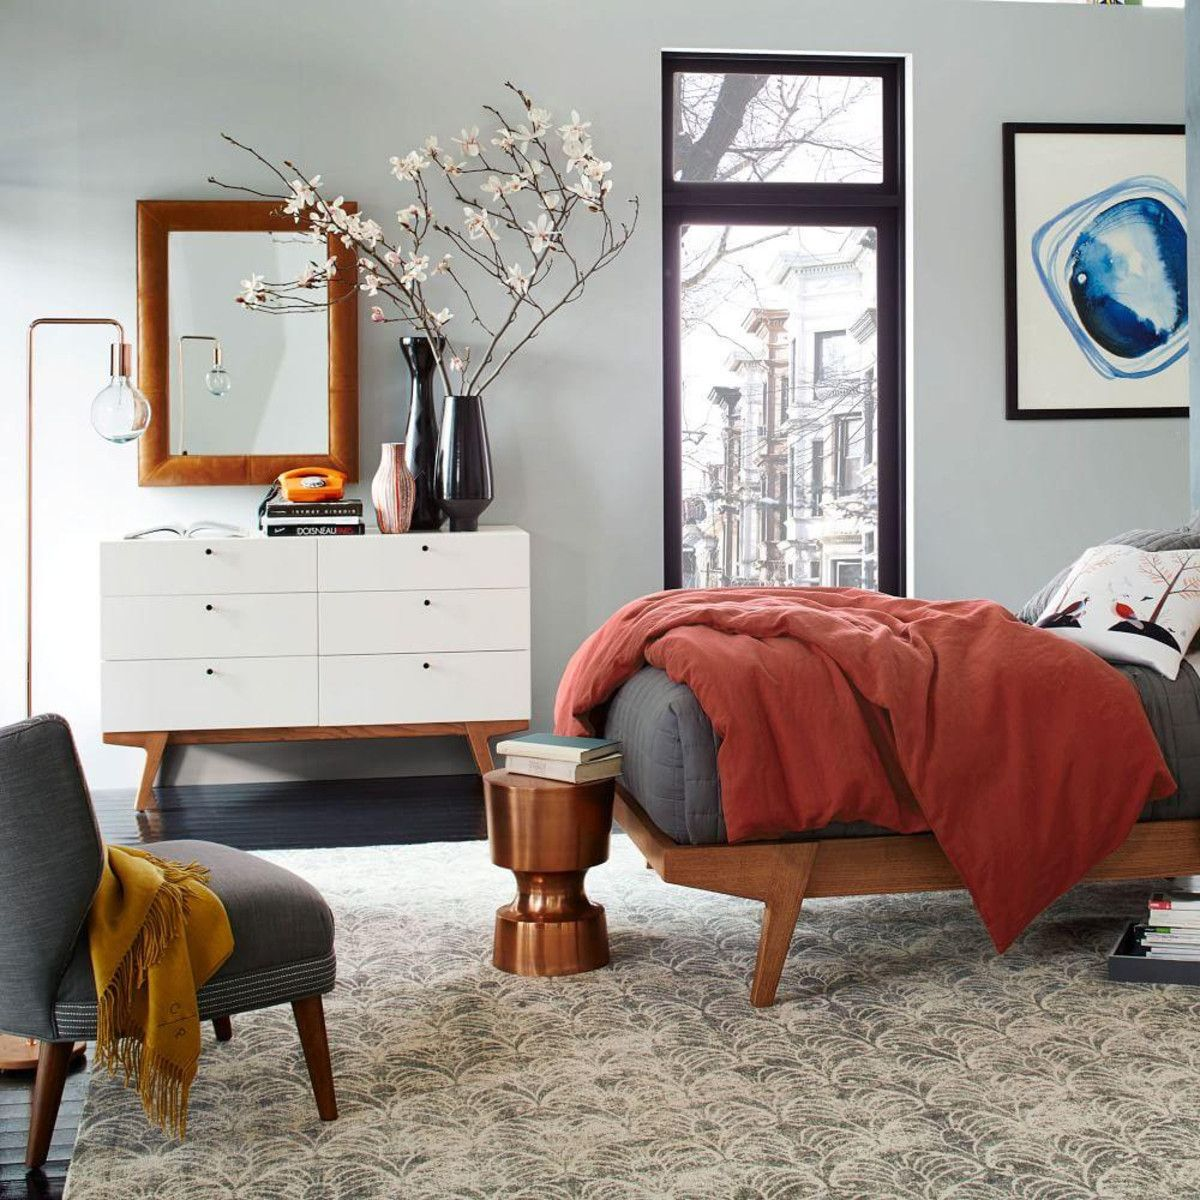 Simple Modern Ideas For Small Living Rooms To Fool The Eyes: Apartment Bedroom Design, Small